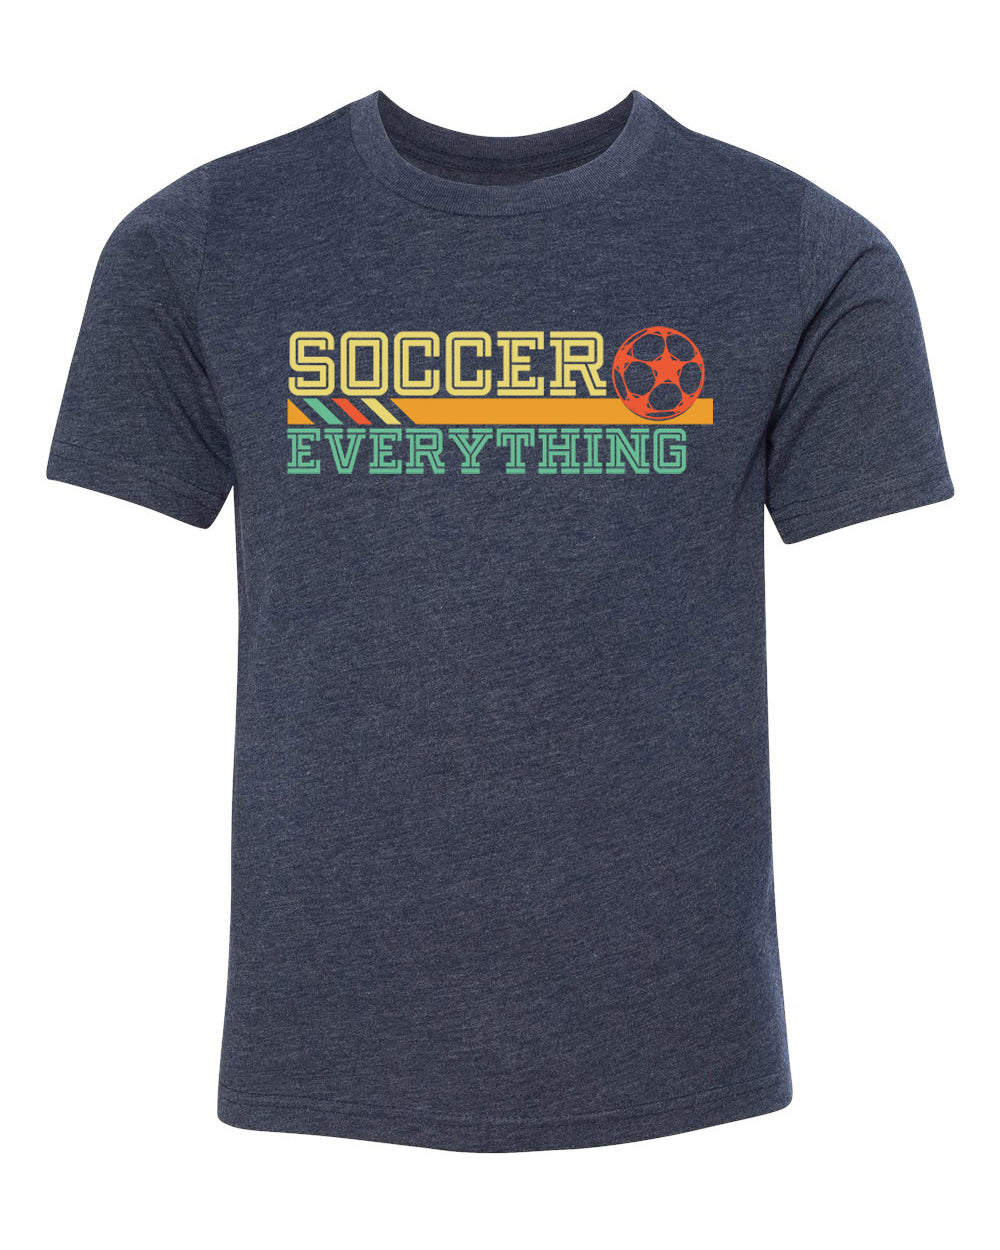 Shirt - Soccer Is Everything Youth Soccer Shirts, Cute Soccer Shirts For Kids